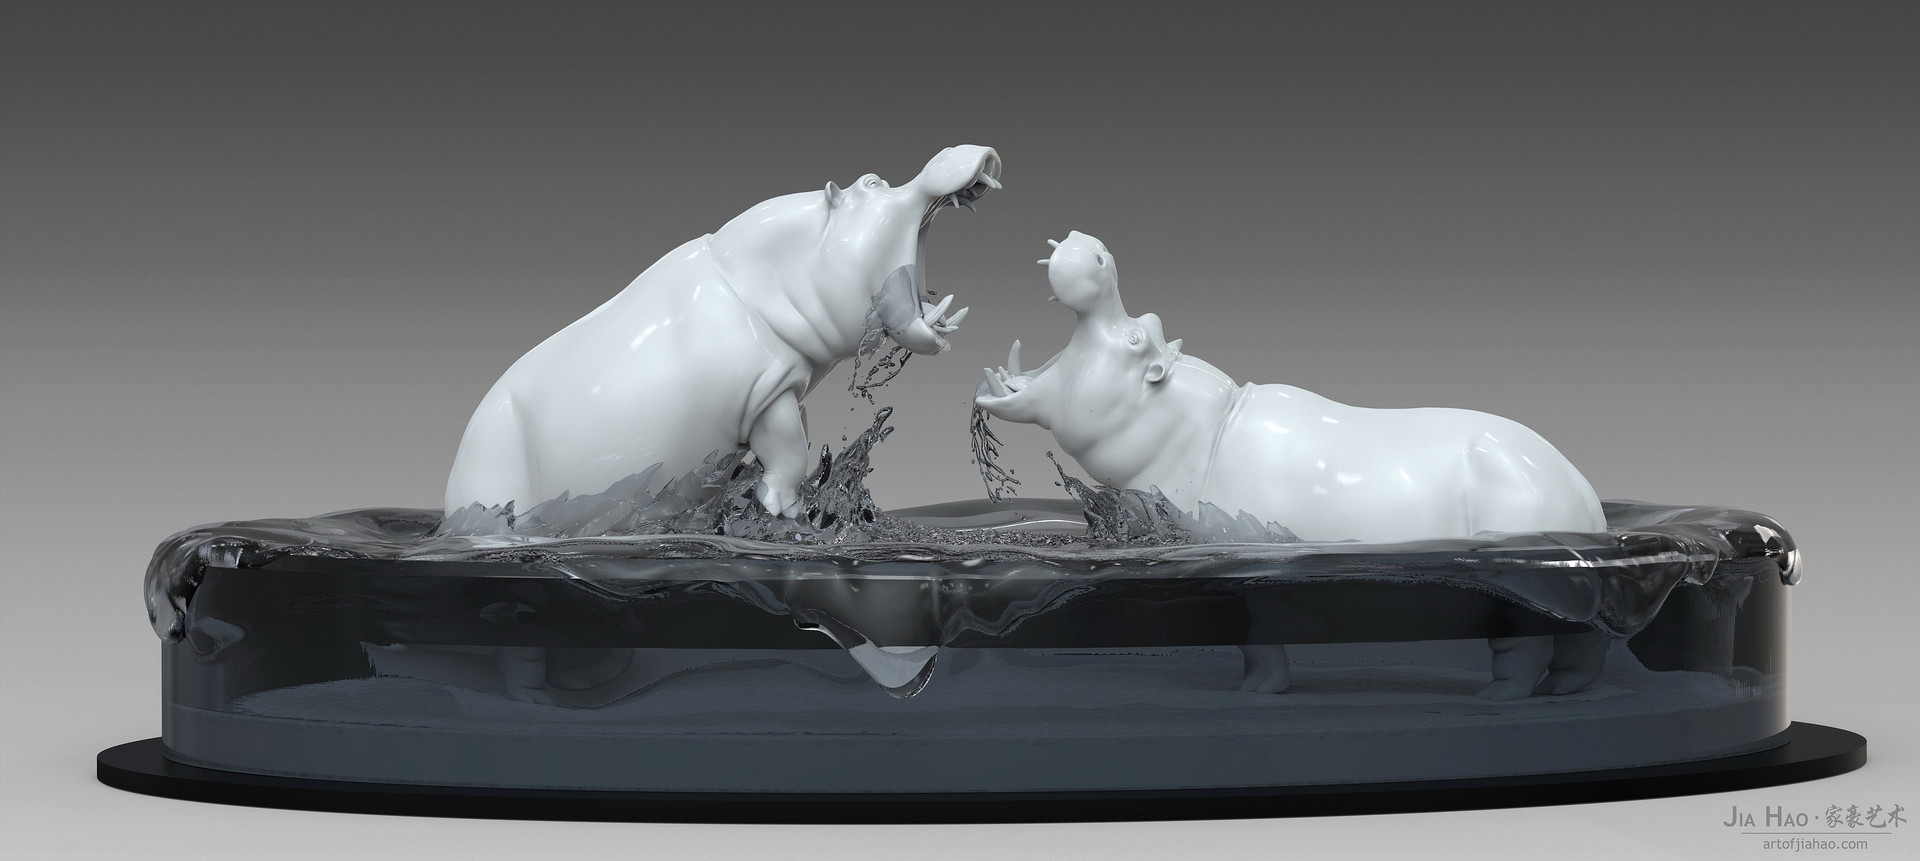 Jia hao hippo digitalsculpture 01